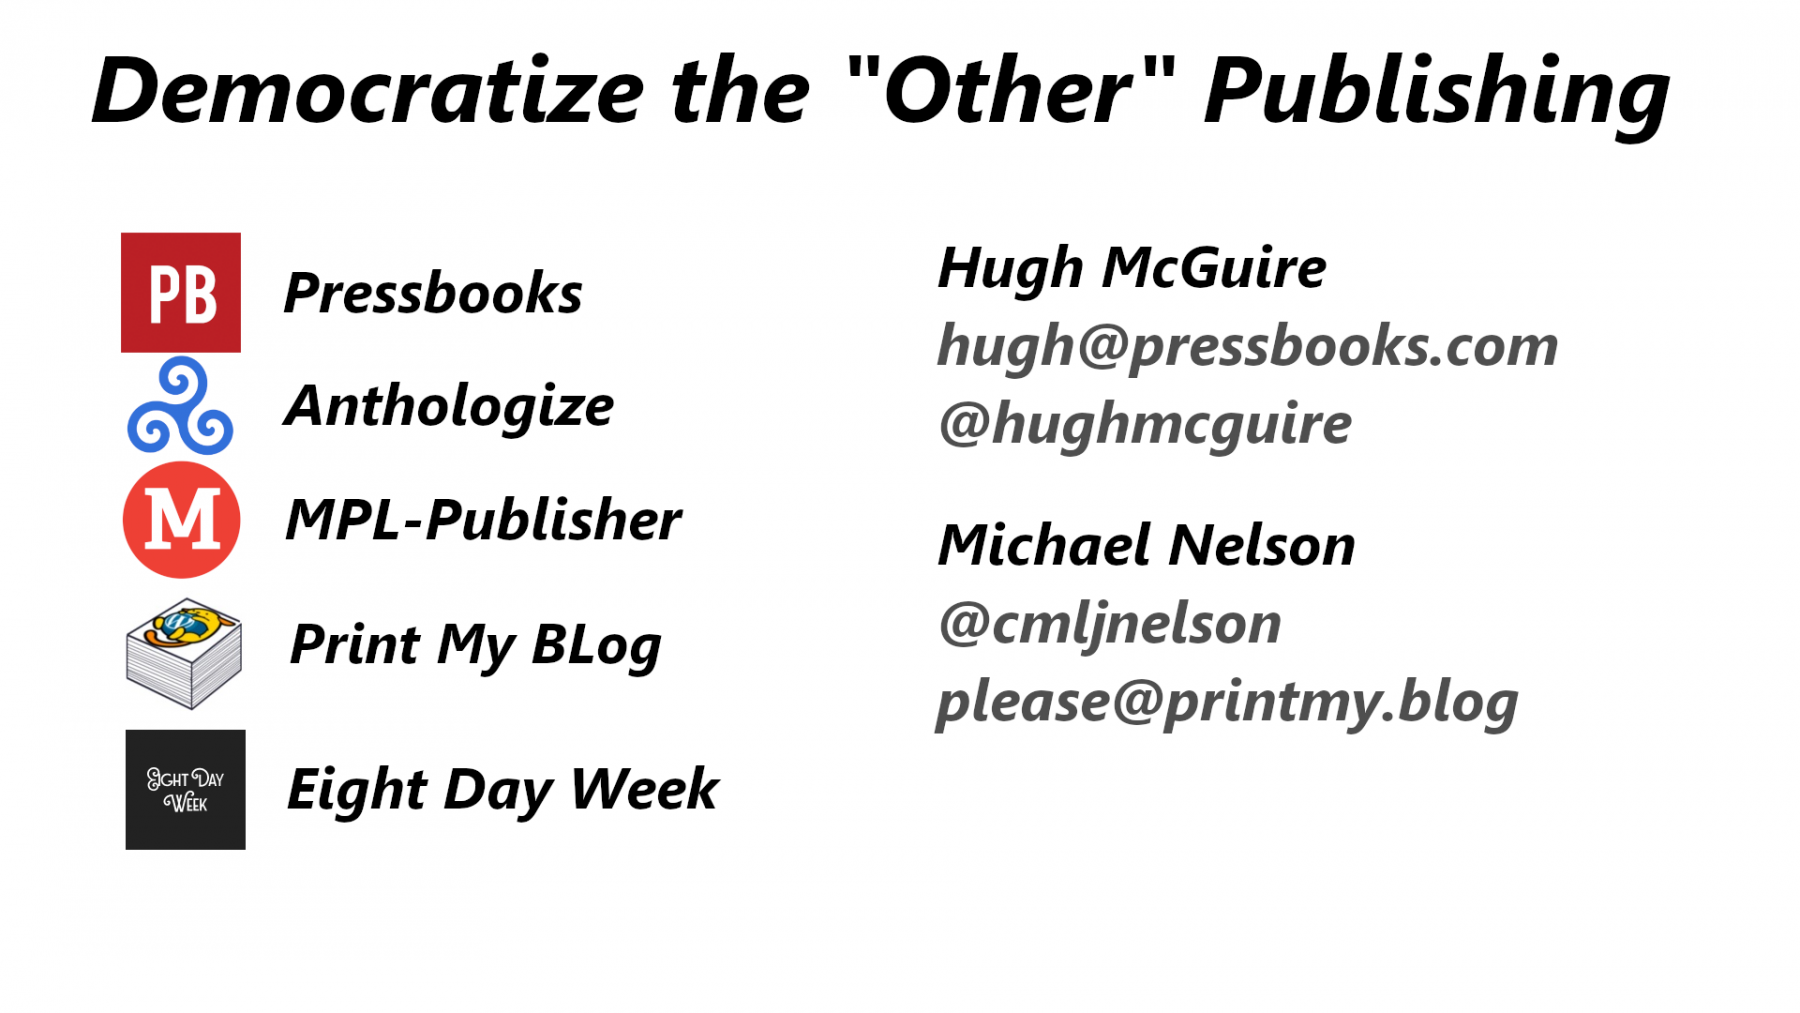 """Democratize the """"Other"""" Publishing: Pressbooks, Anthologize, MPL-Publisher, Print My Blog, Eight Day Week. By Hugh McGuire (@hughmcguire) and Michael Nelson (@cmljnelson)"""